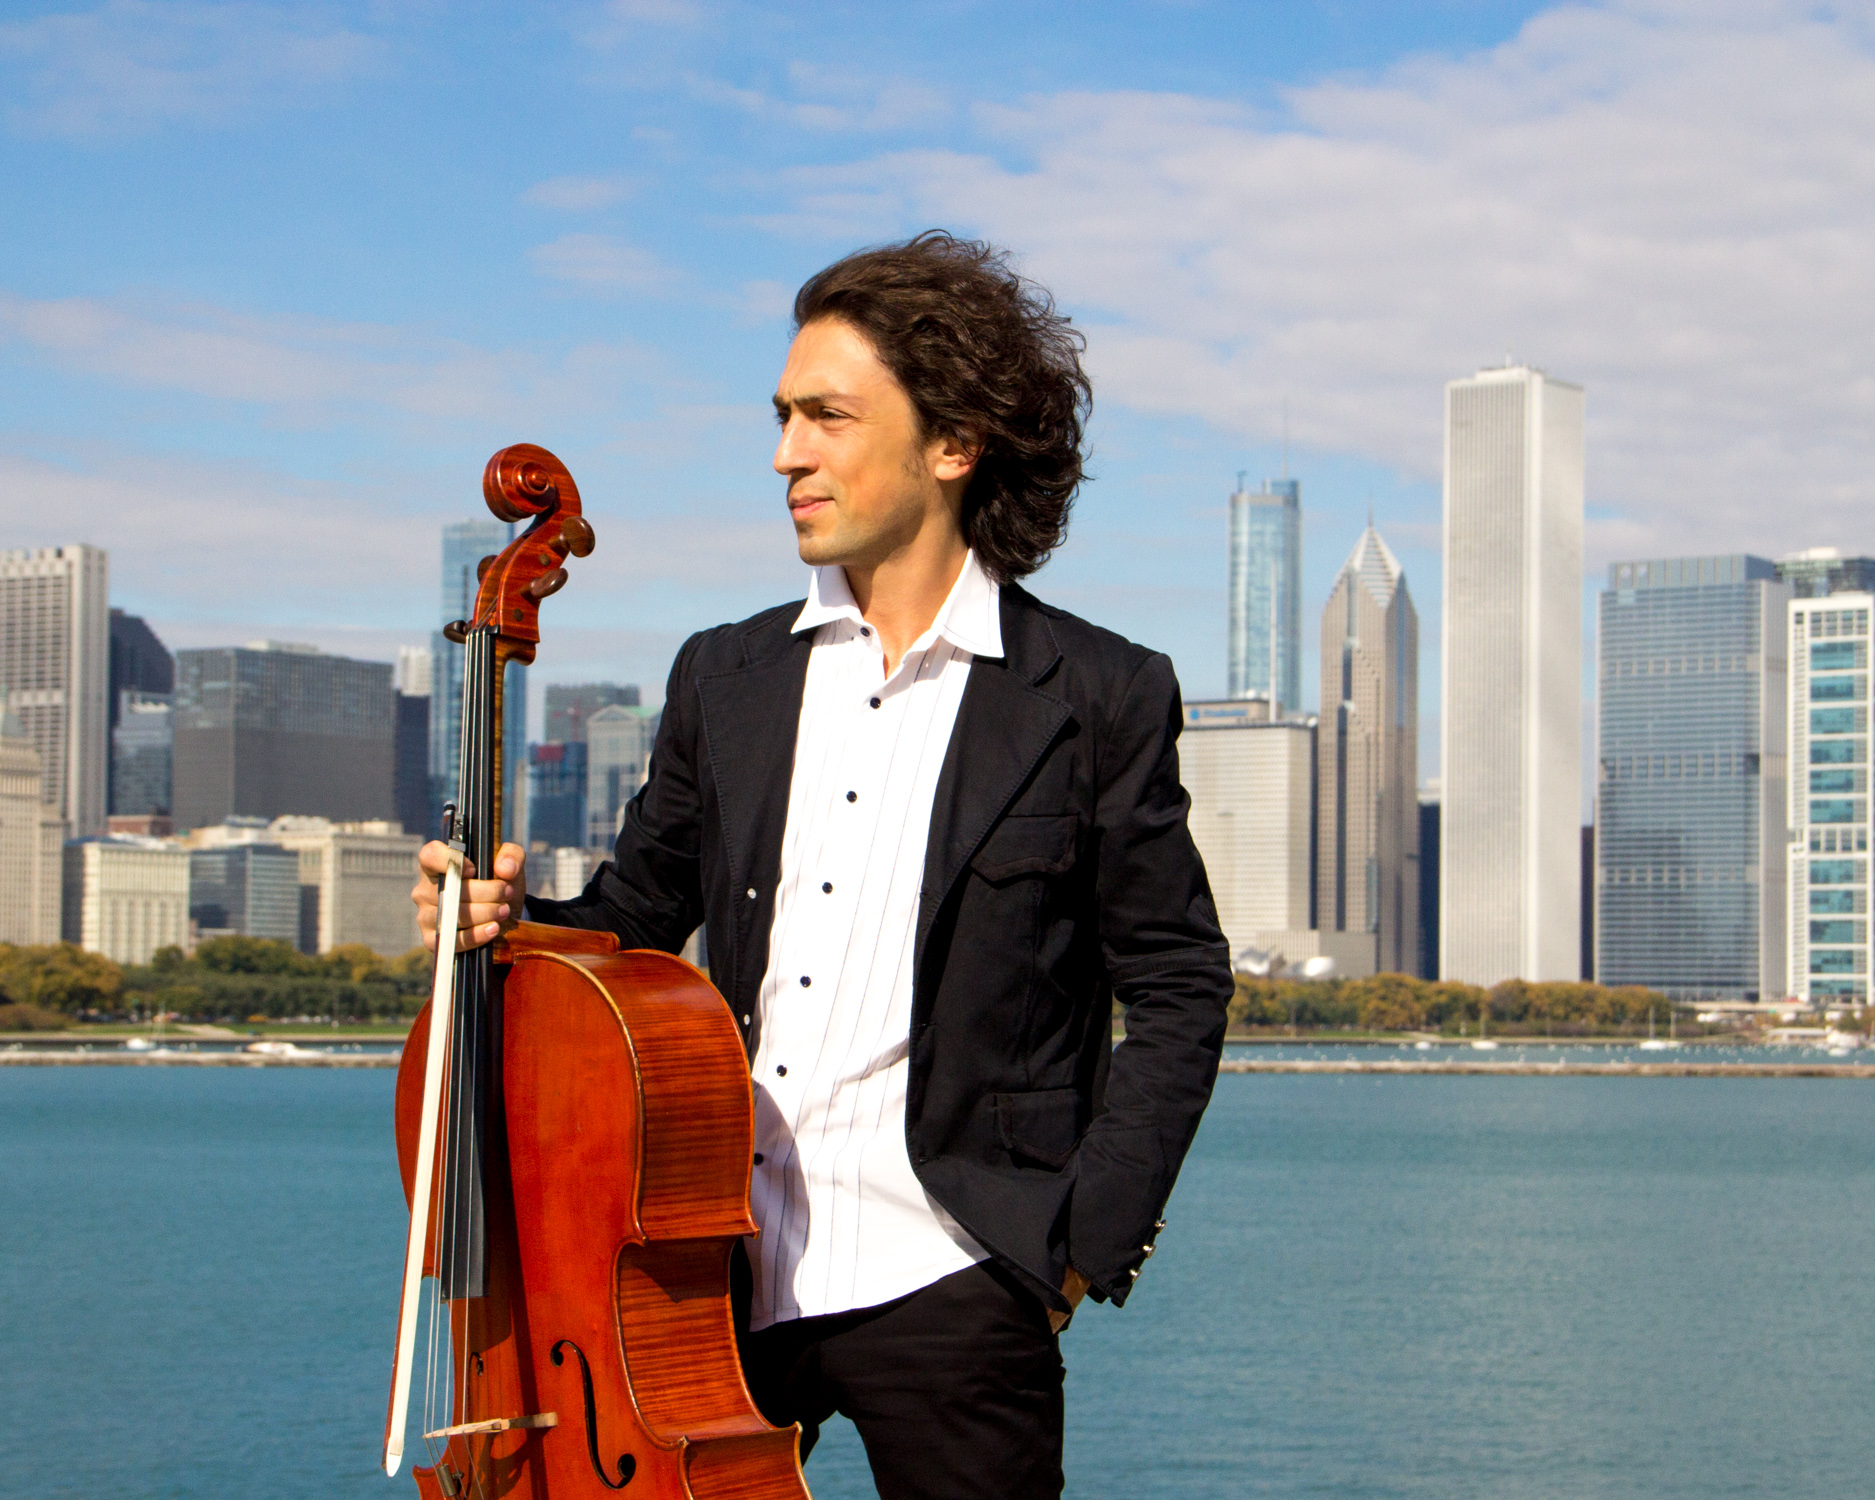 American star cellist to give a free concert at the Rothko Centre